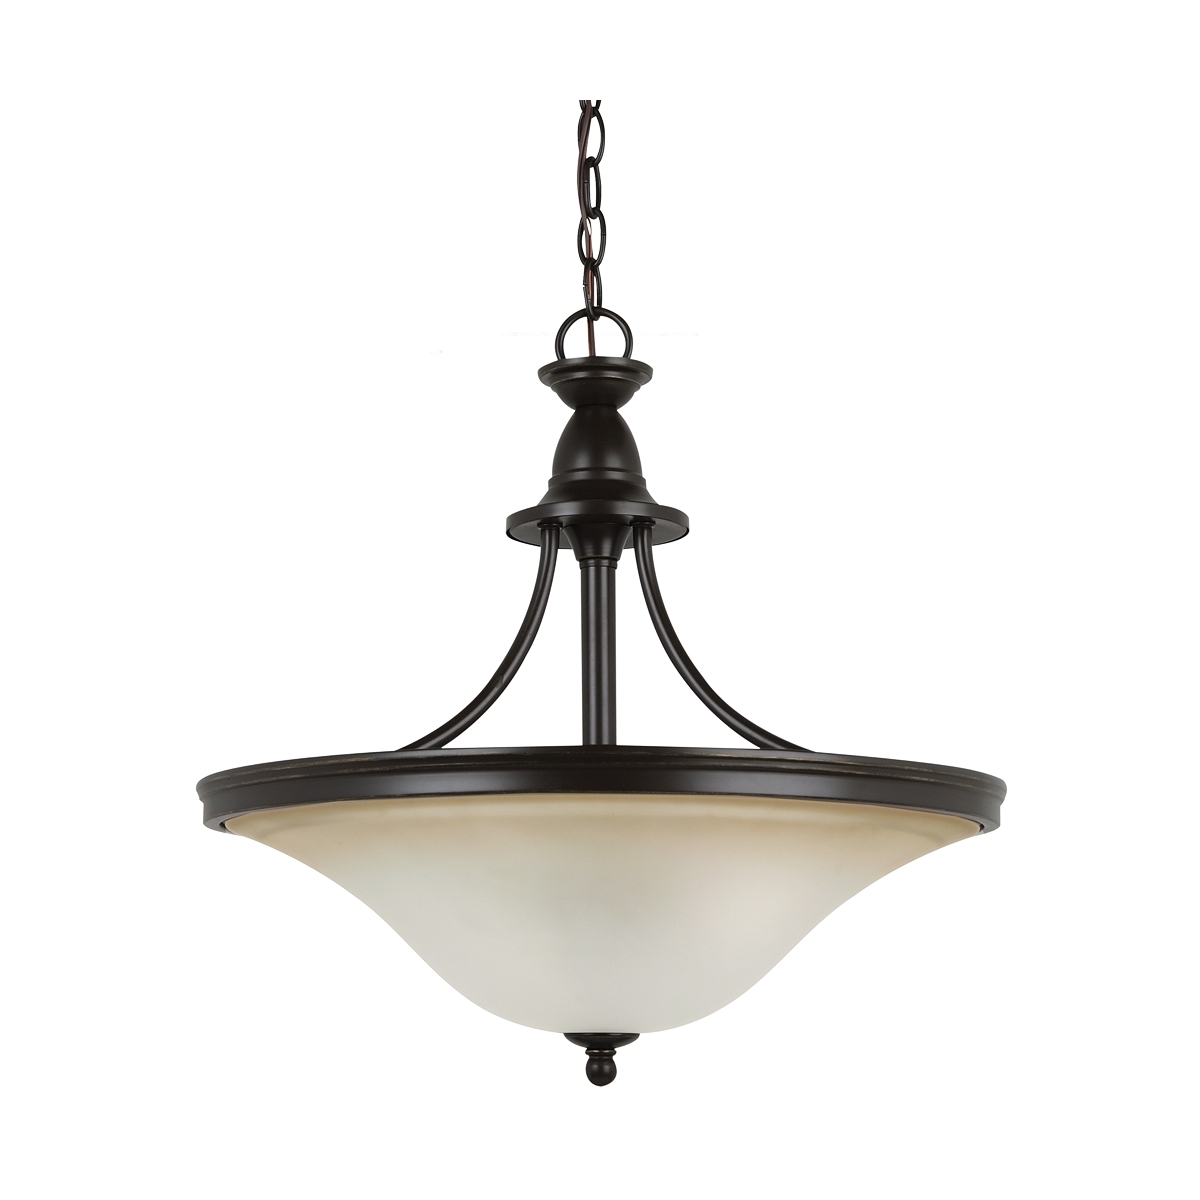 Sea Gull 65851-782 Gladstone 3 Light 19 inch Heirloom Bronze Pendant Up Light Ceiling Light in Standard photo